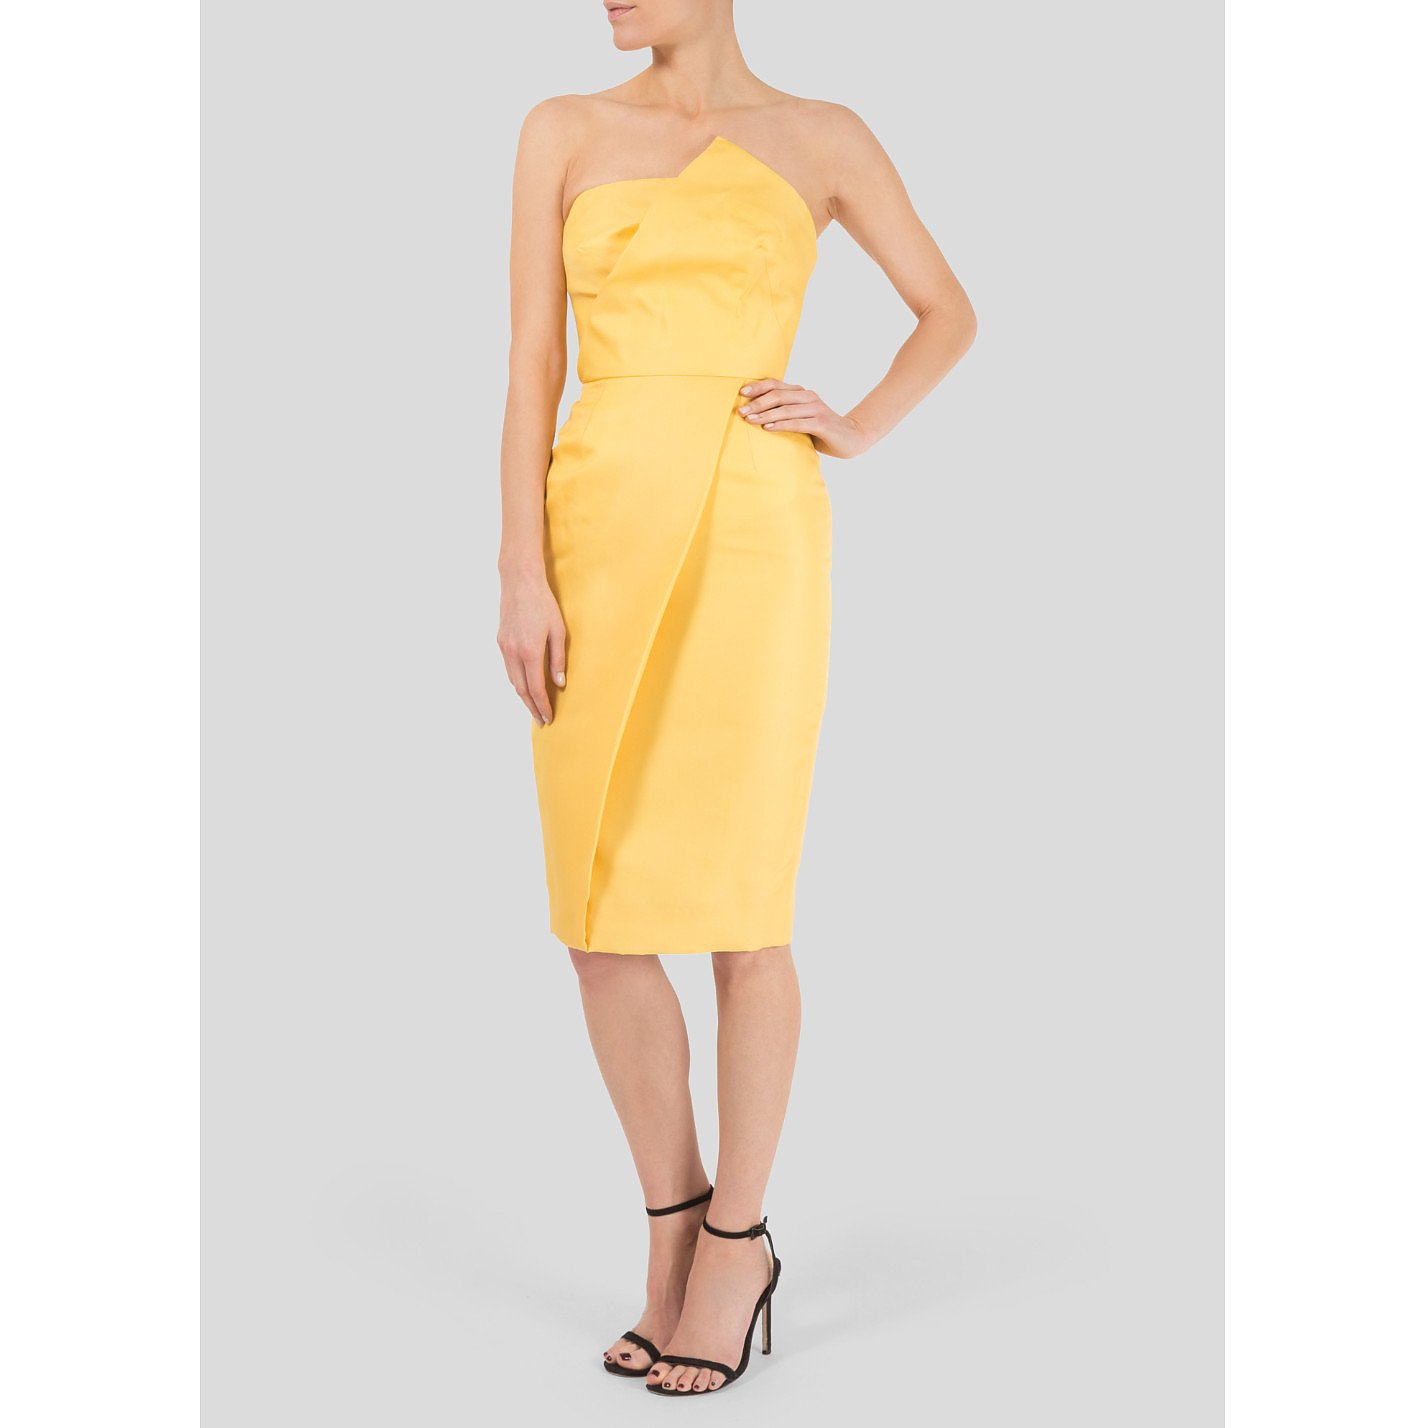 Victoria Beckham Folded Strapless Dress